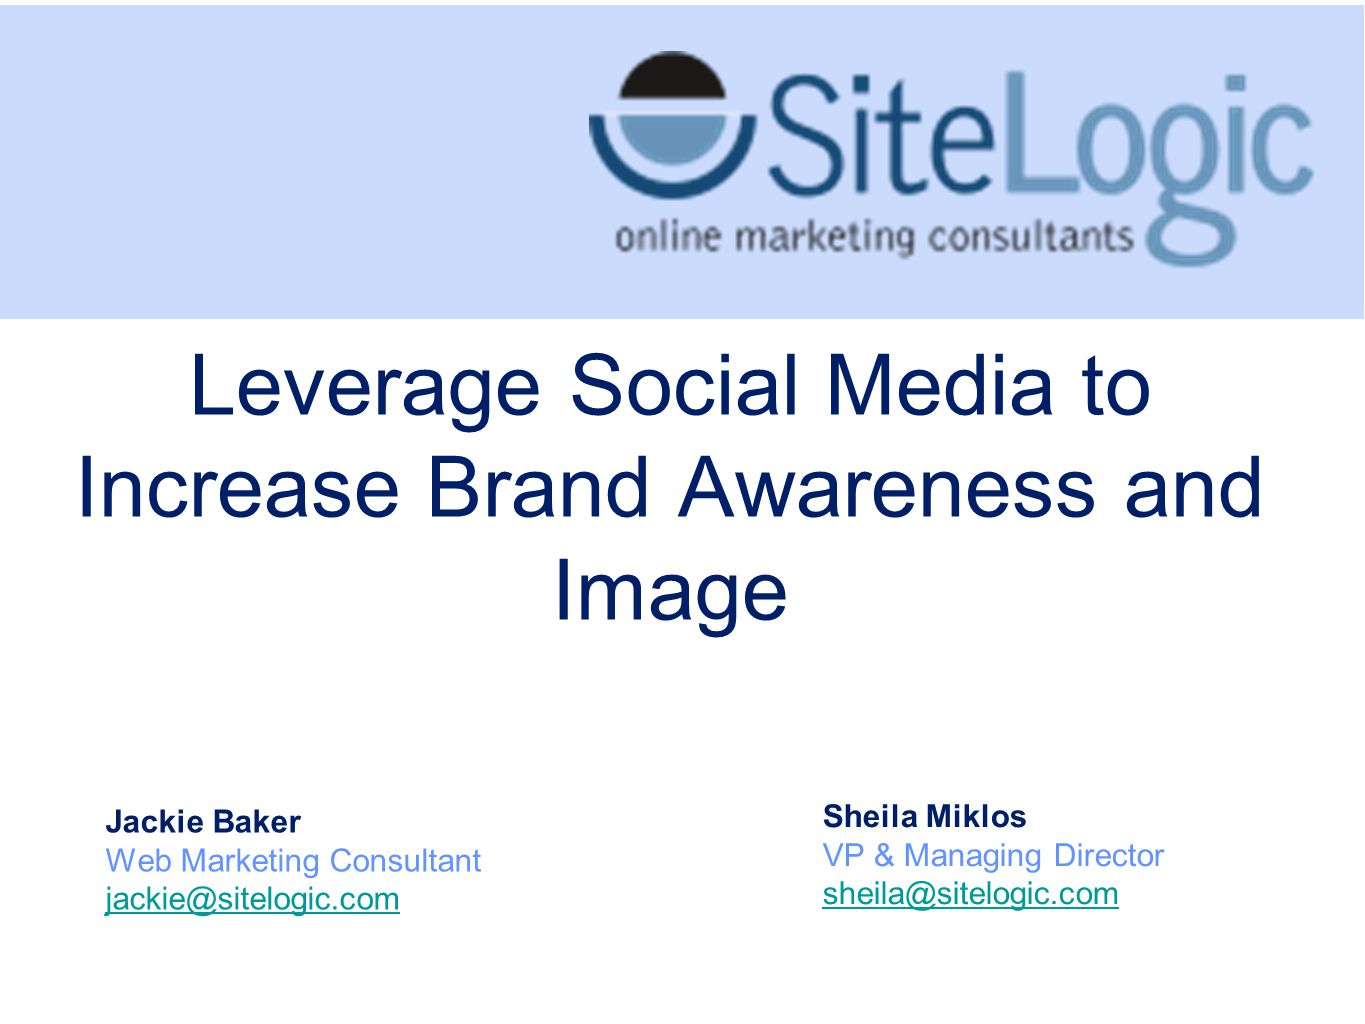 Leverage Social Media to Increase Brand Awareness and Image